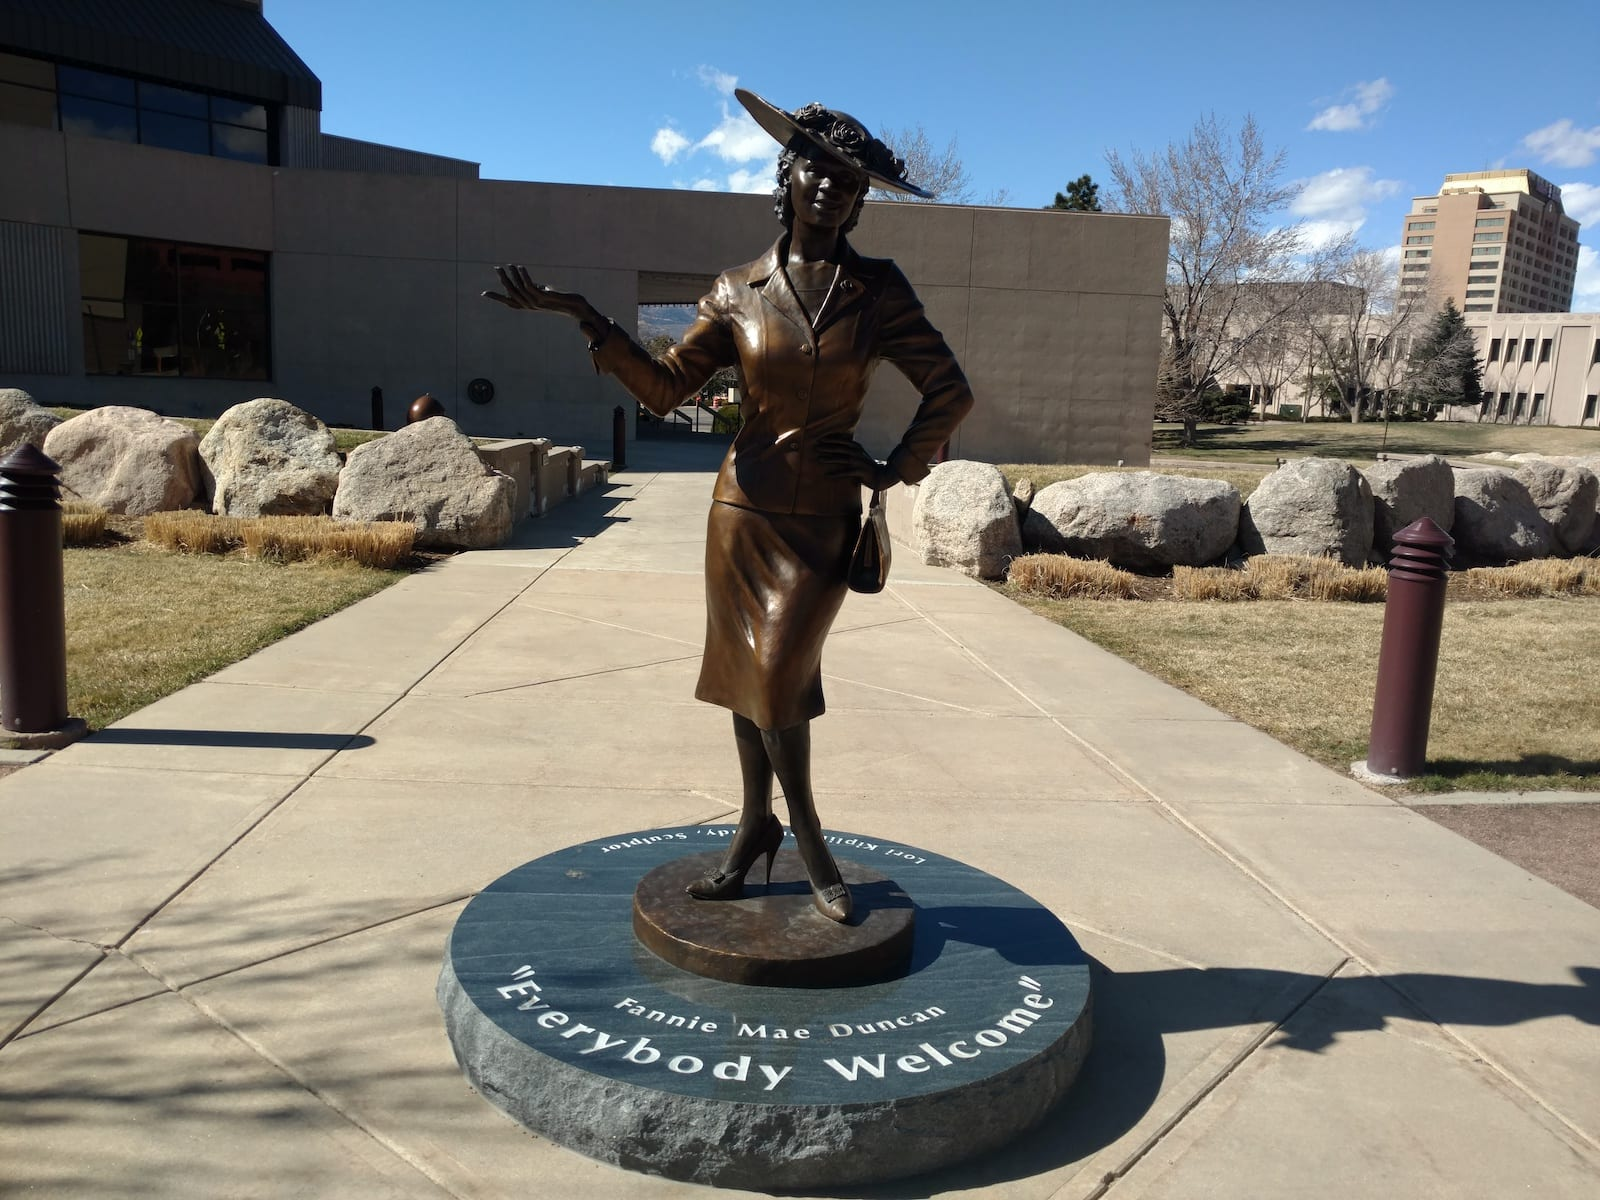 Fannie Mae Statue Colorado Springs